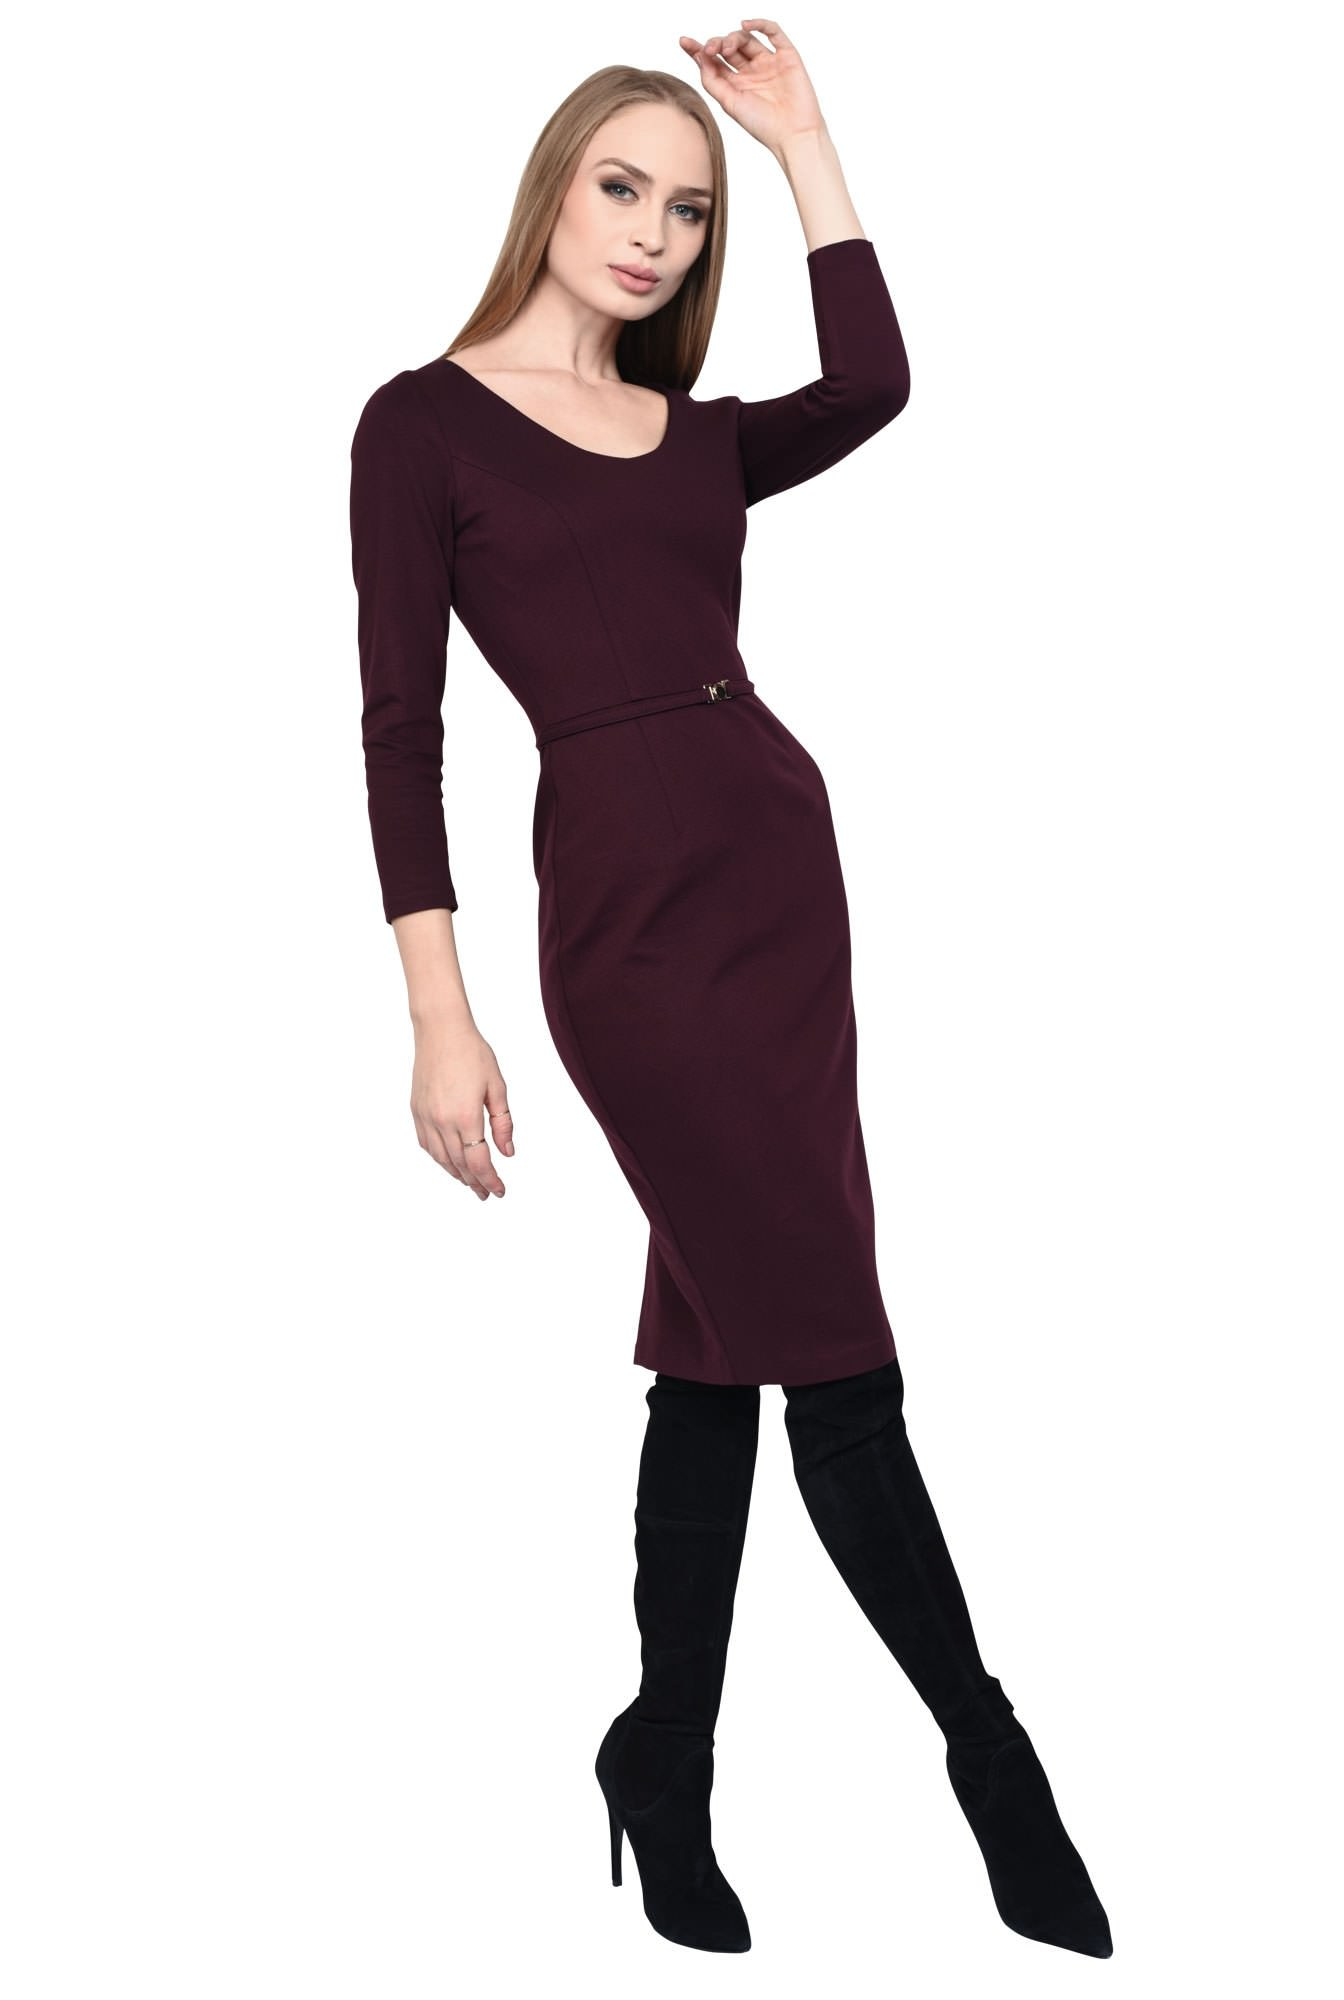 0 - ROCHIE OFFICE CONICA R 176-BURGUNDY